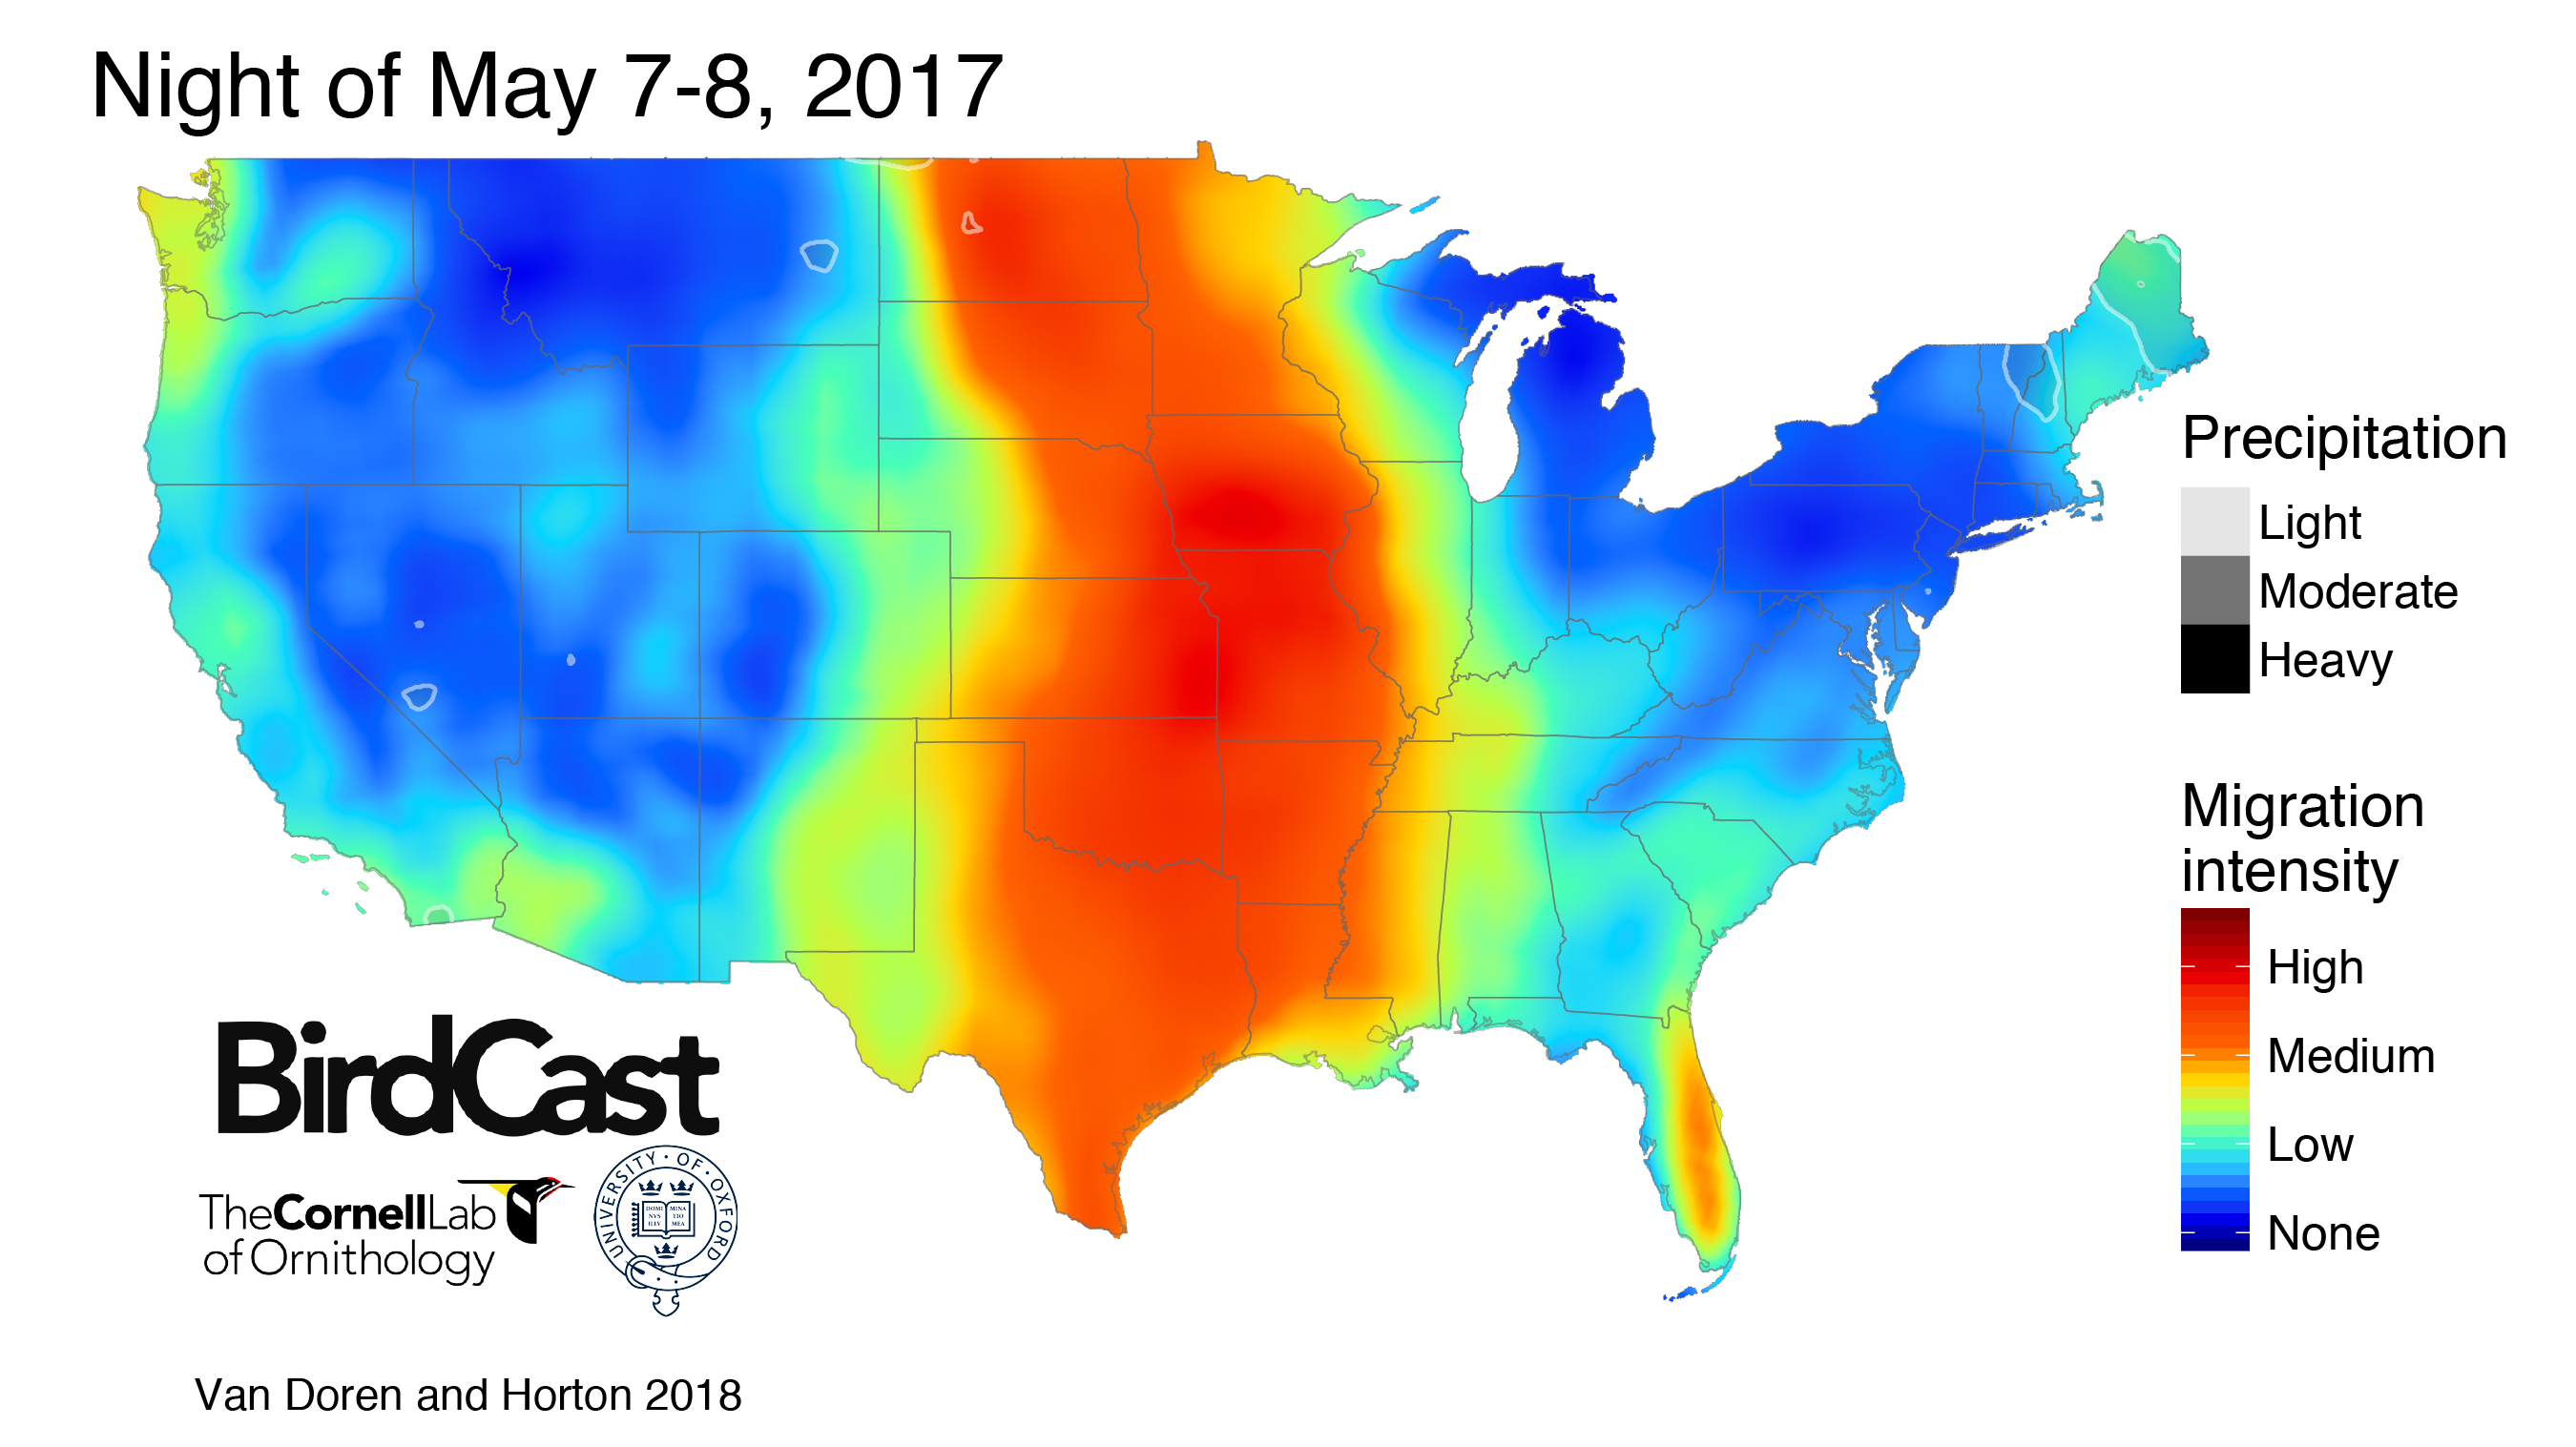 Us Bird Migration Map Not Just for the Weatherman: Maps Forecast Bird Migration Using